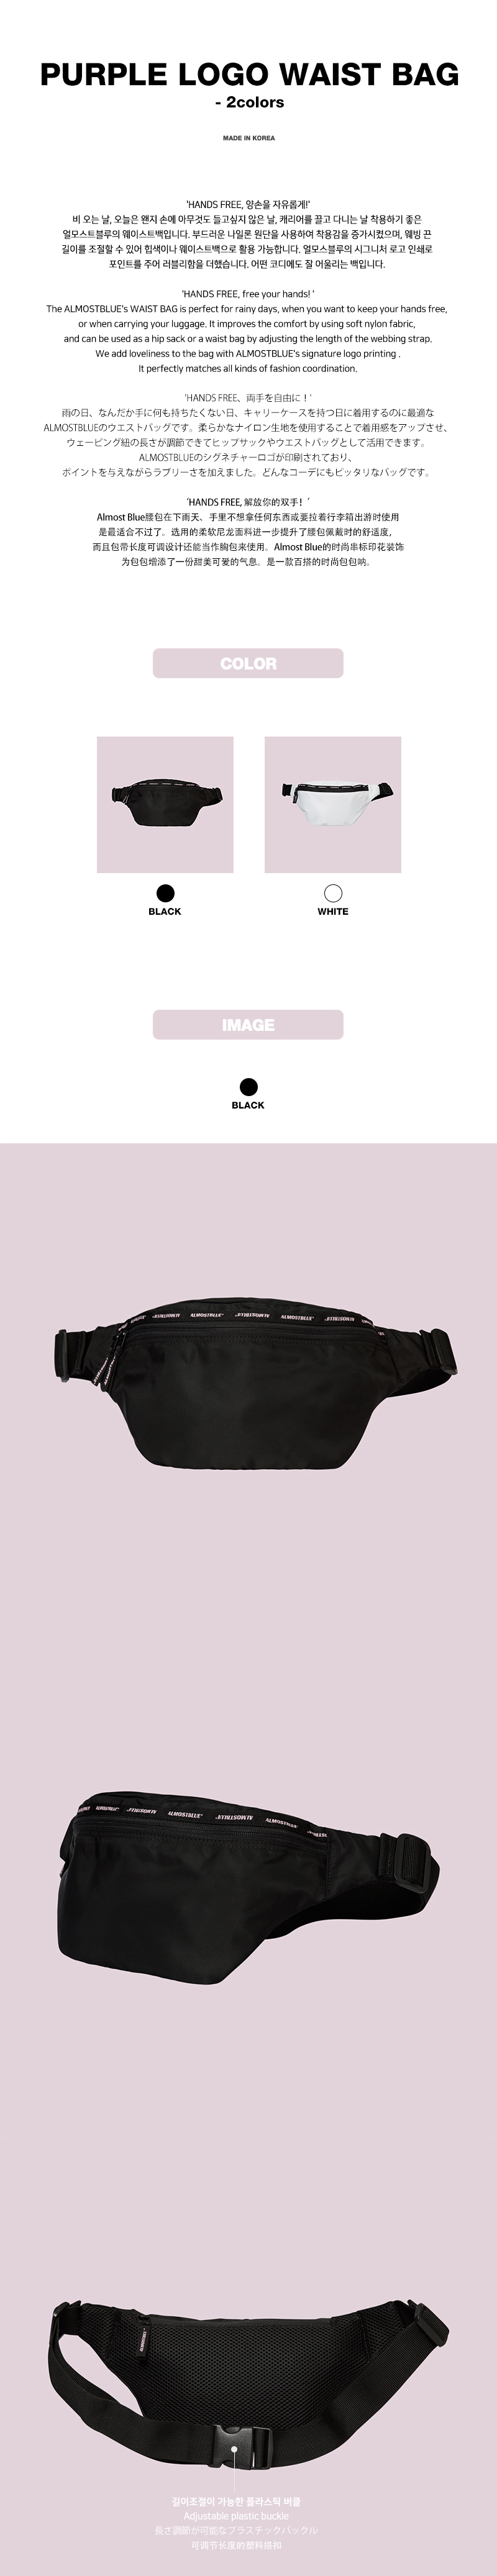 PURPLE LOGO WAIST BAG번역나누기-1.jpg